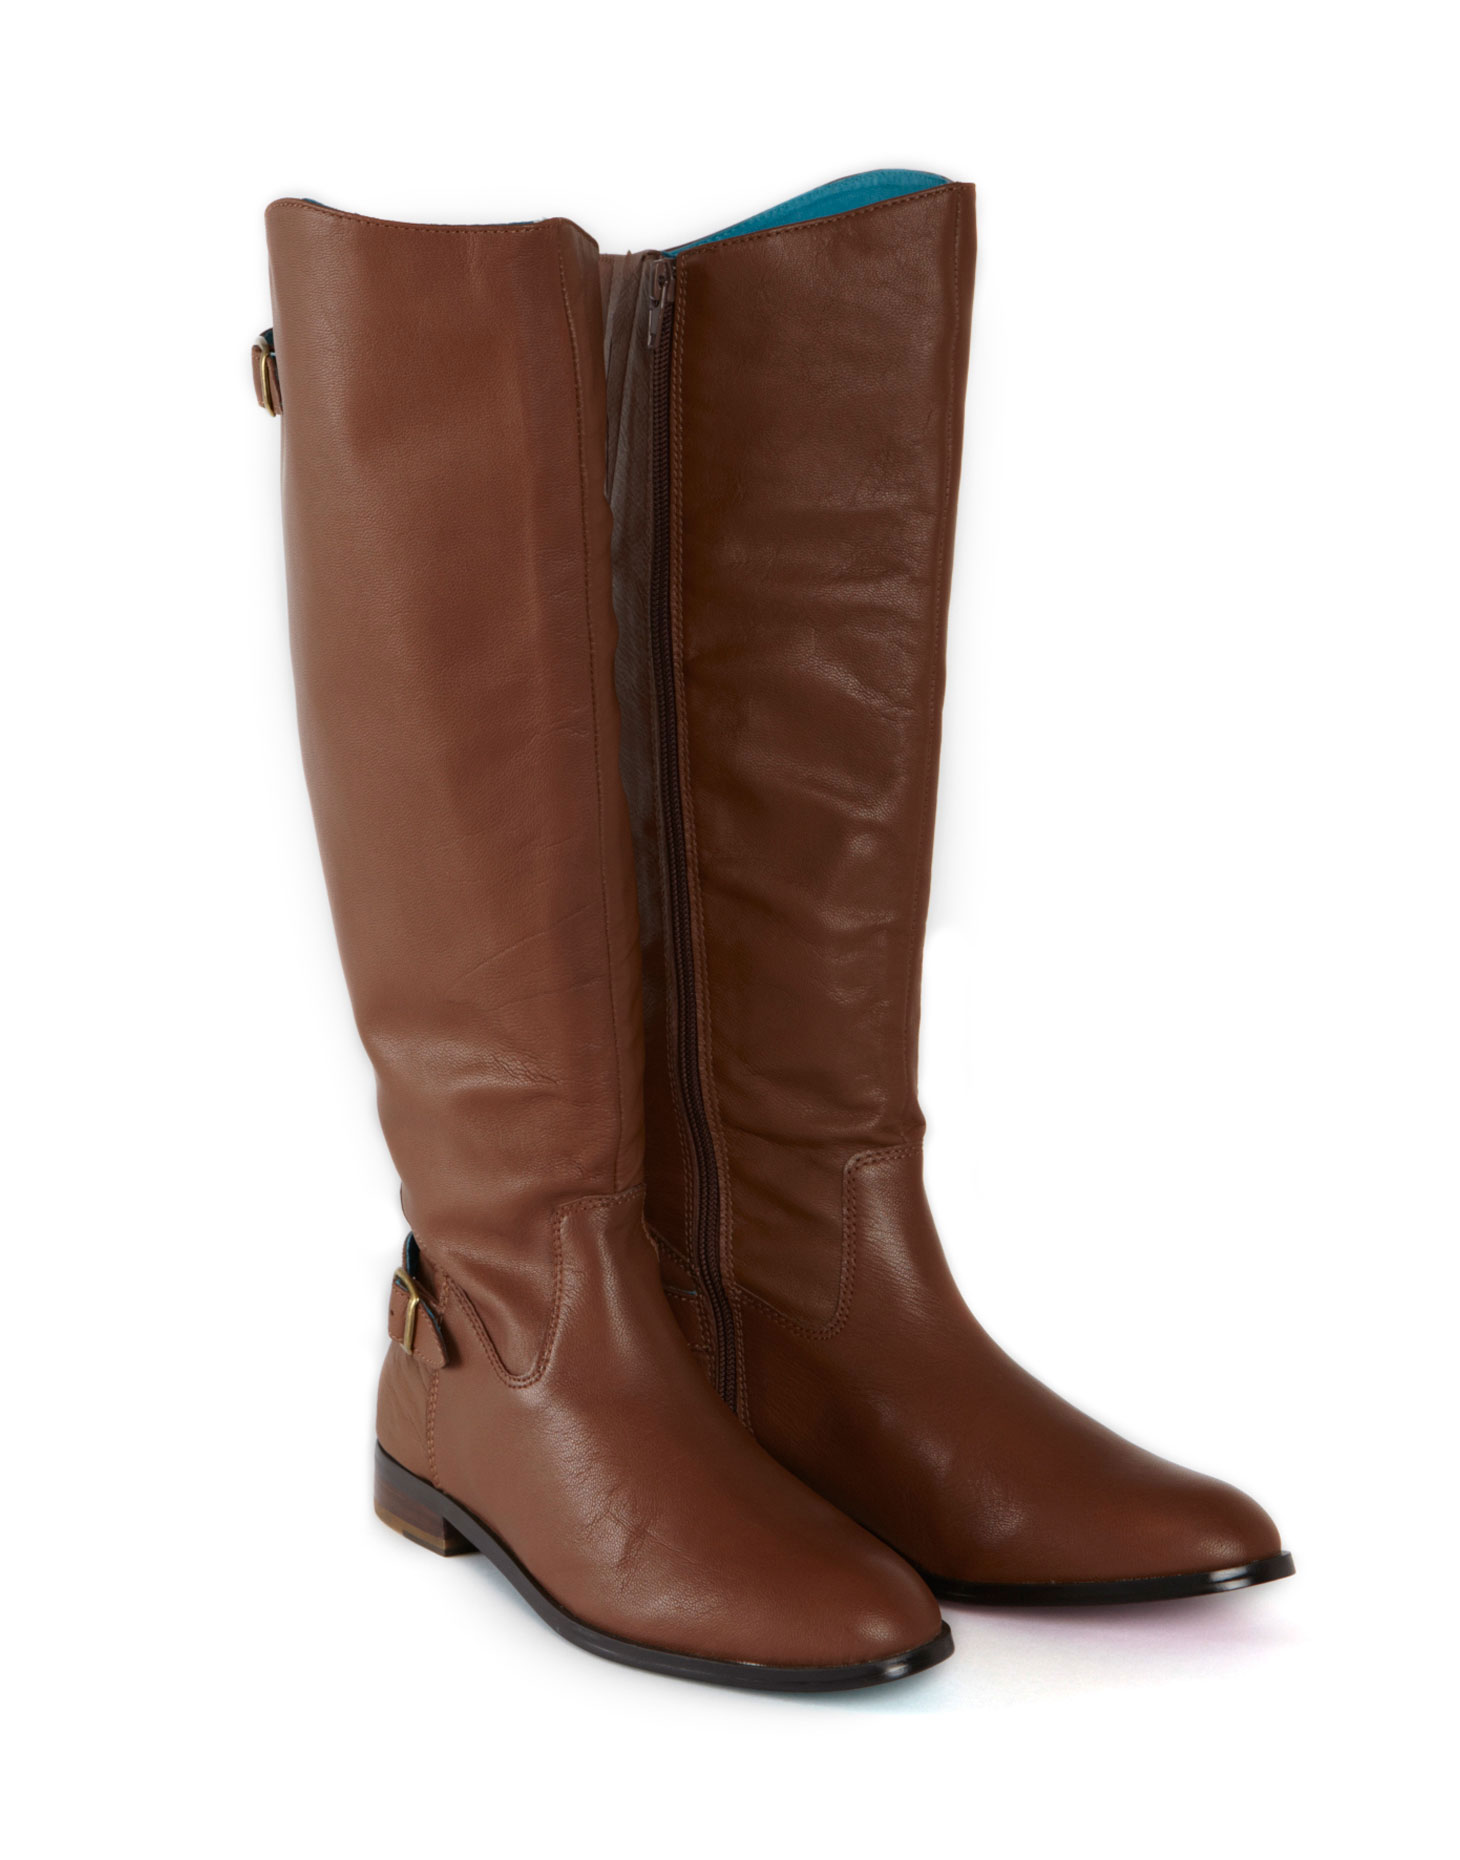 Brown Boots Women JqC5eqHj